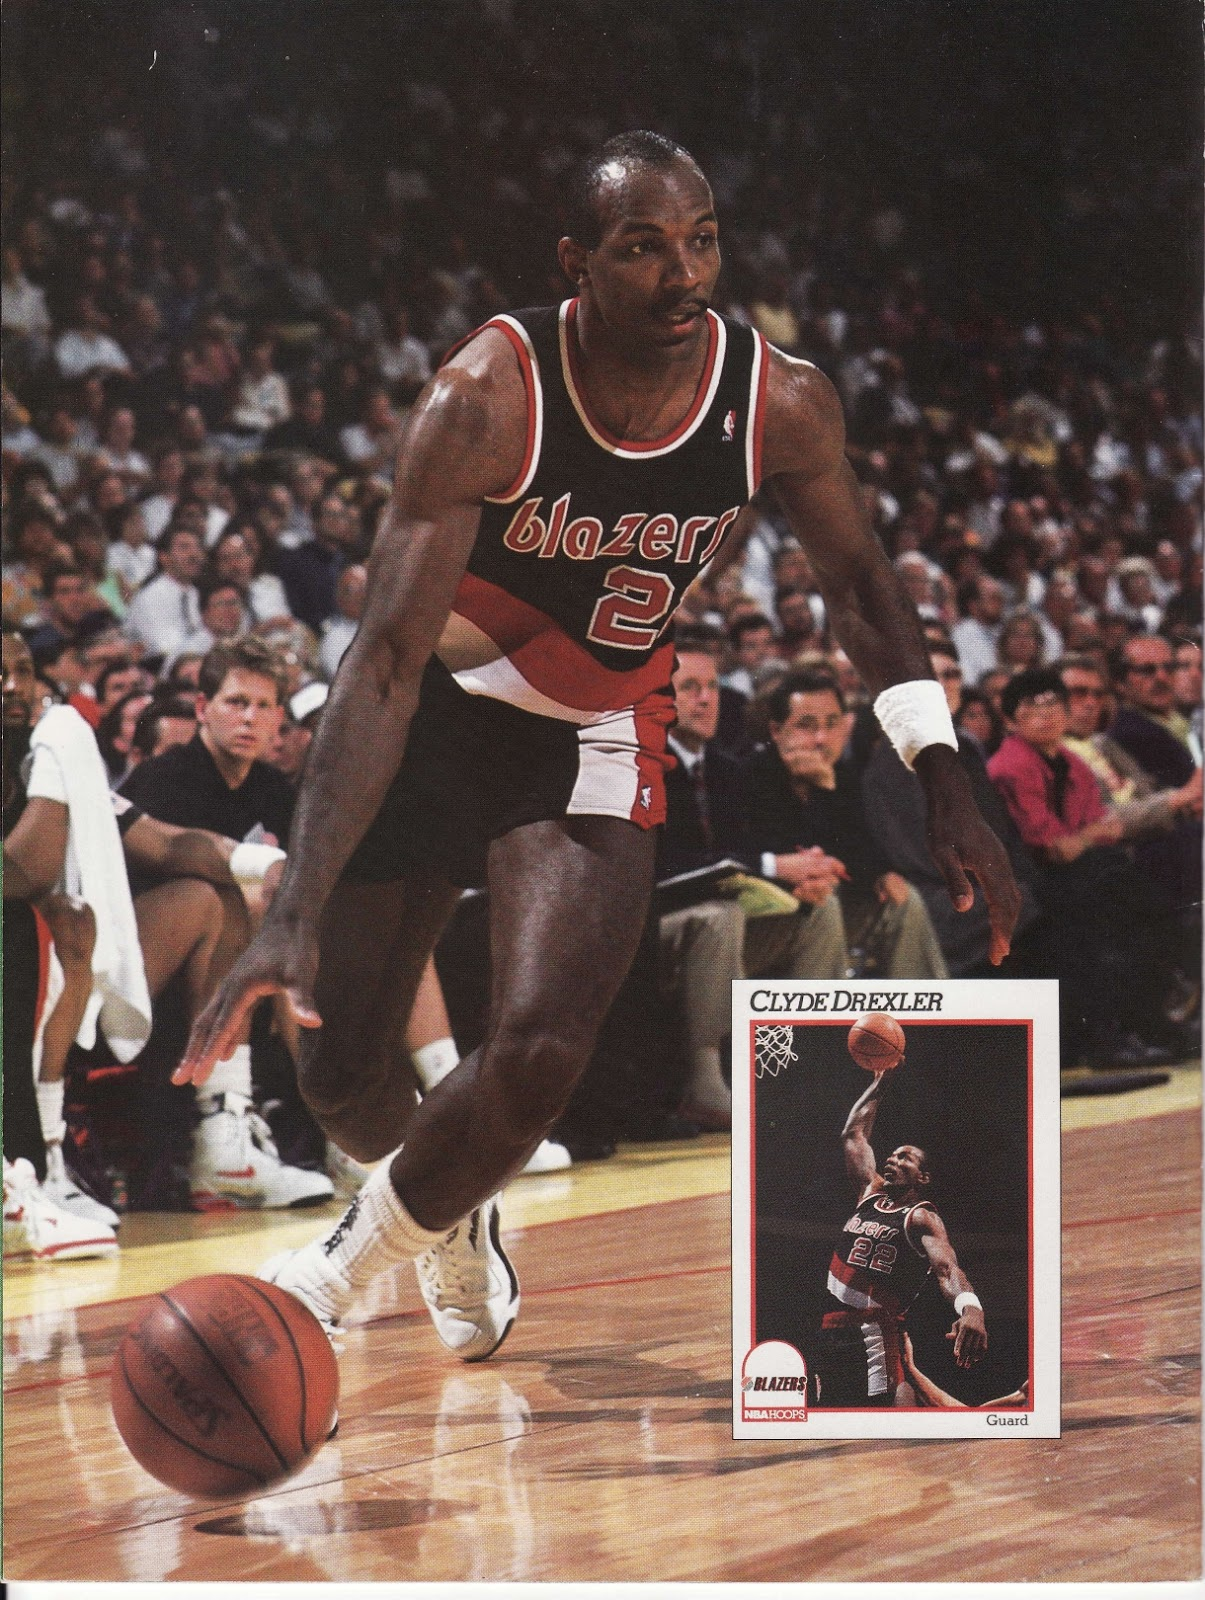 Clyde Drexler from Beckett's Basketball Monthly